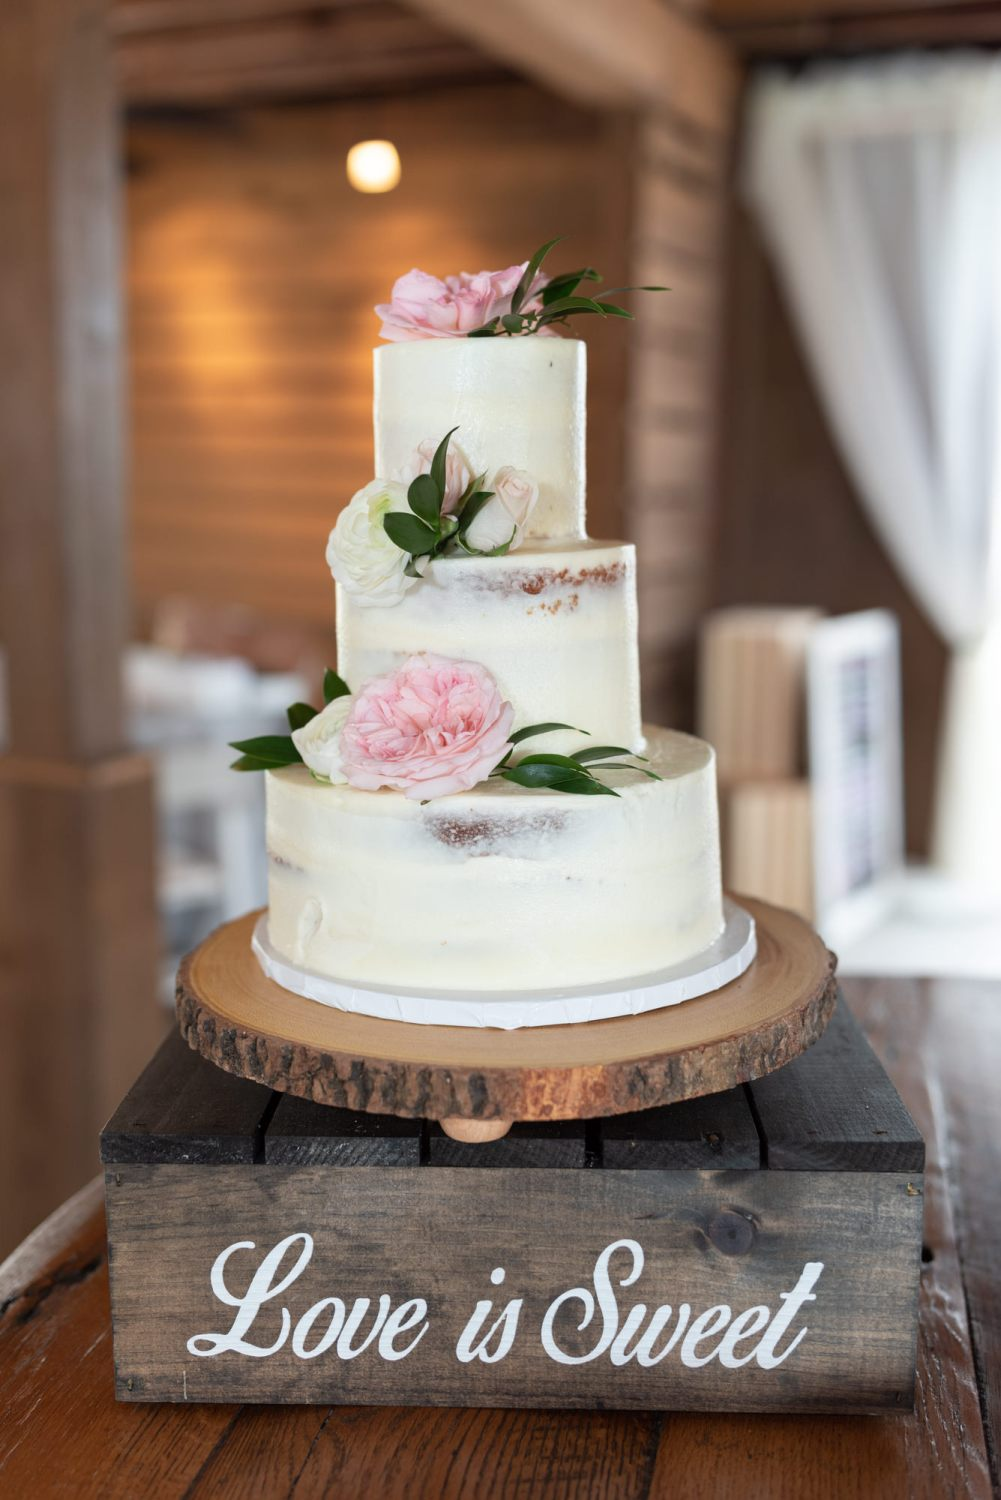 Love is sweet cake details - Wildhorse at Parker Farms